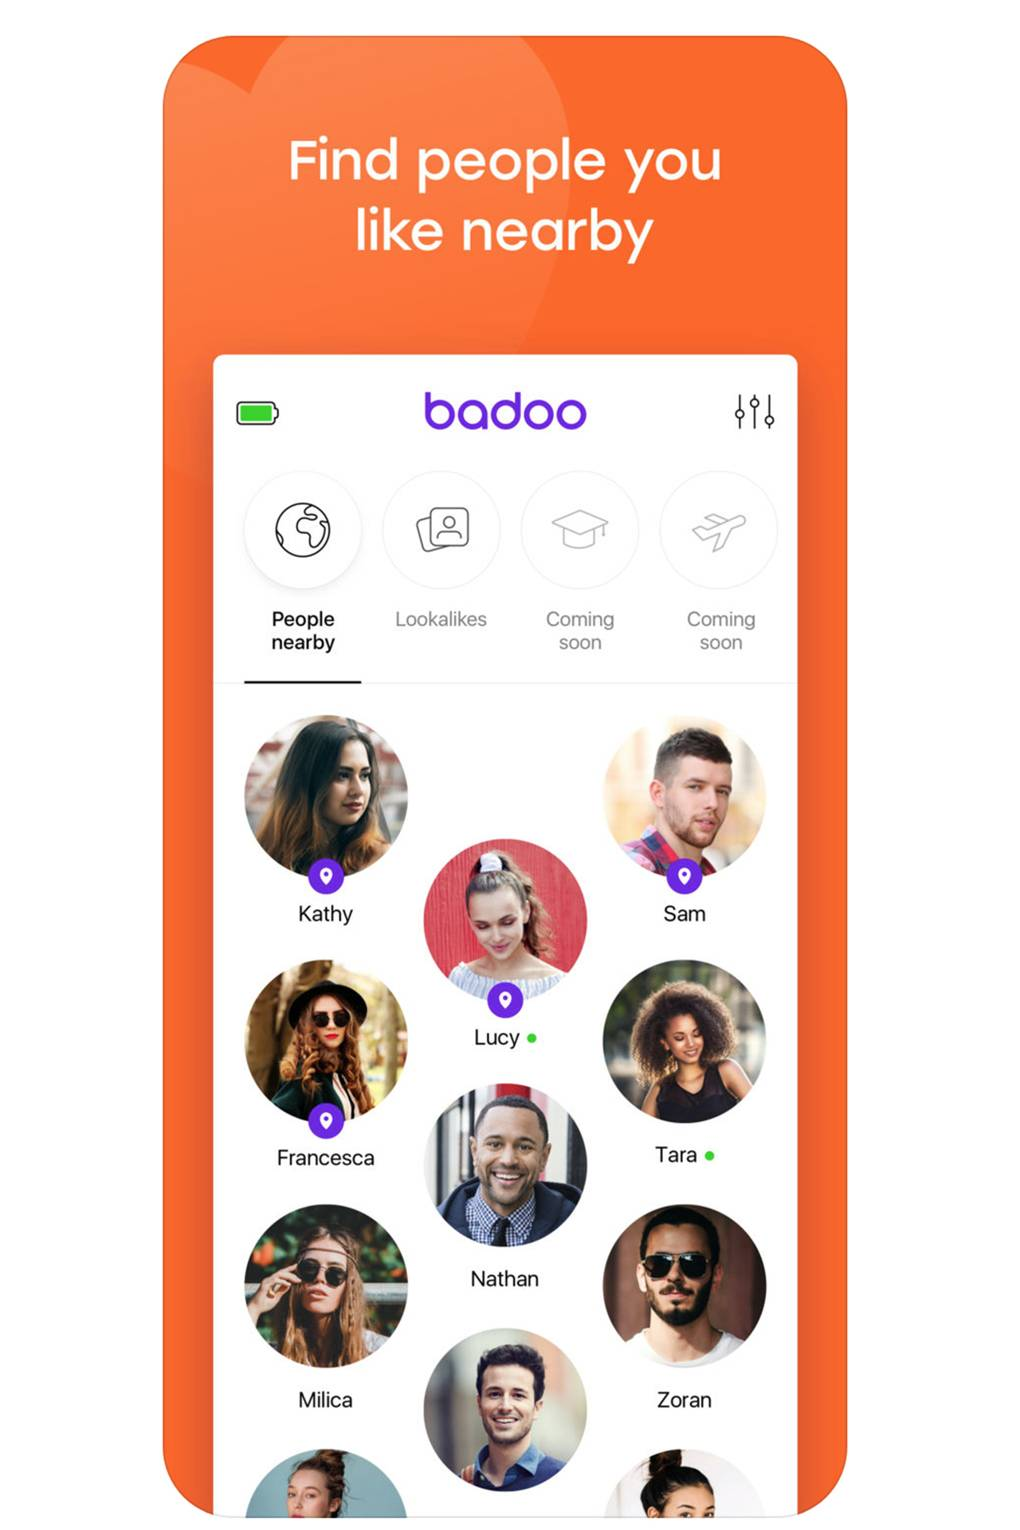 What kind of hookup site is badoo